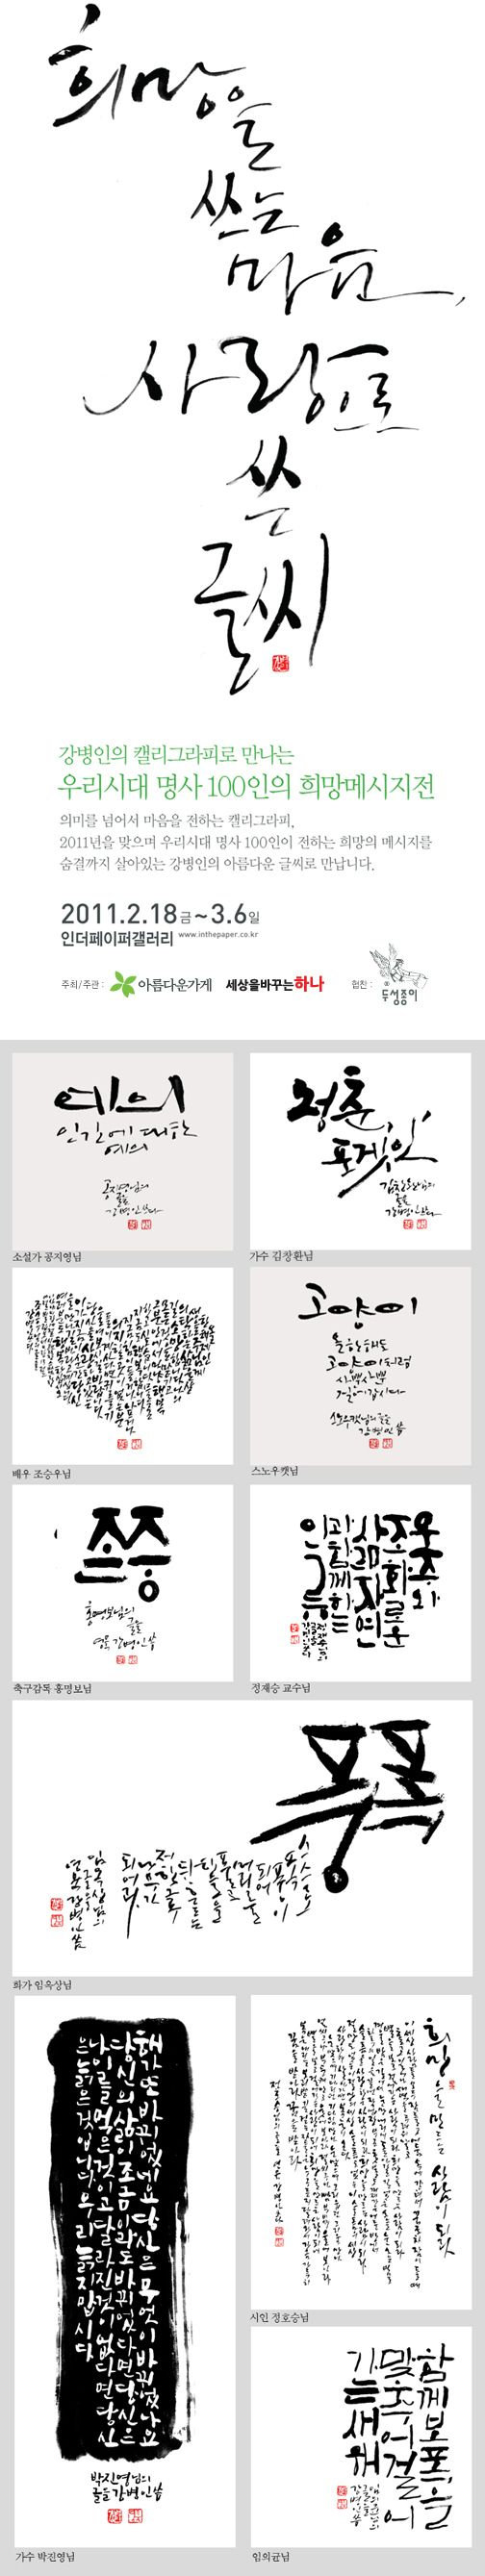 Calendar Typography Map : Calli by kang byung in typo pinterest calligraphy